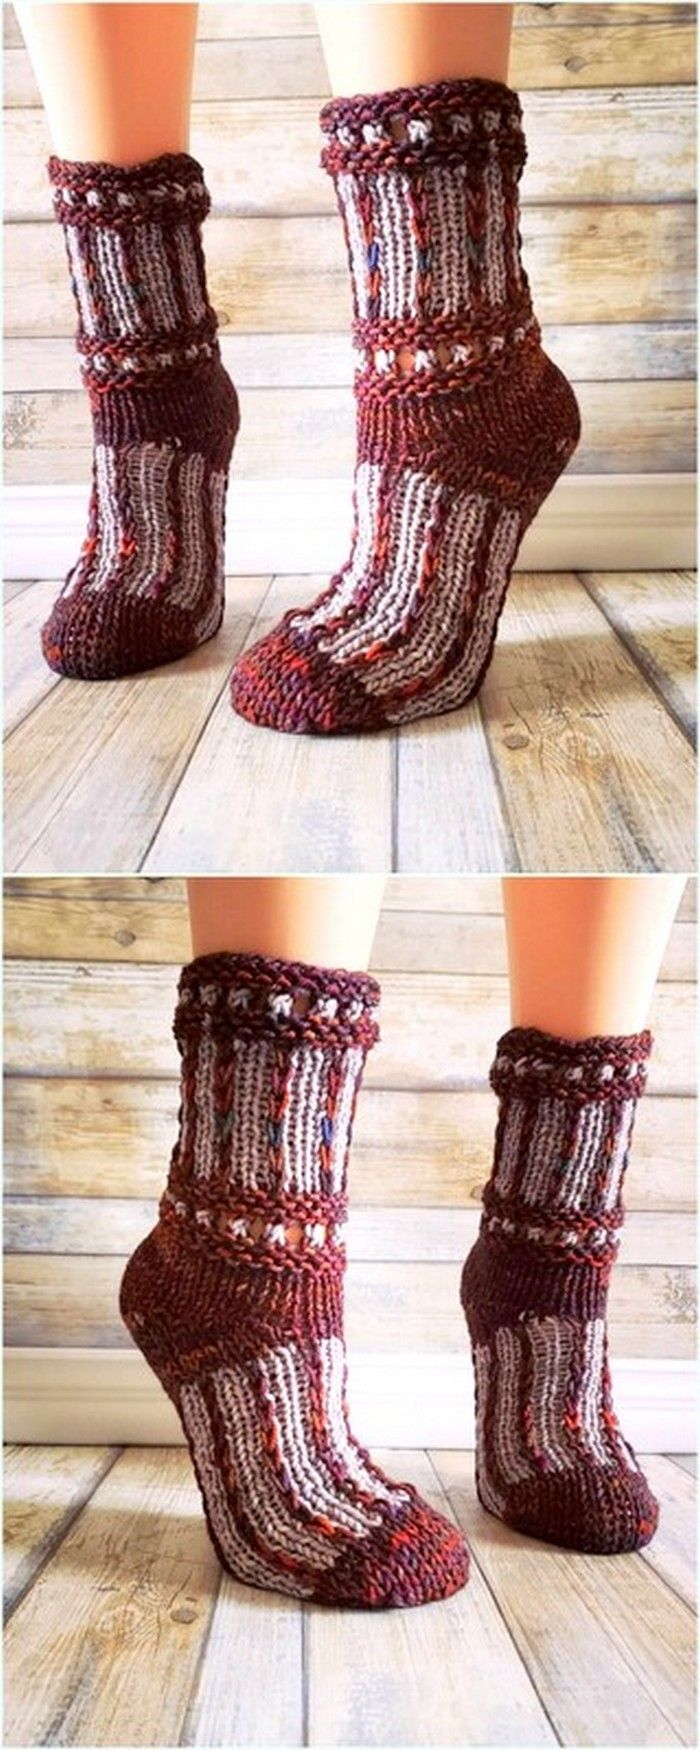 40+Best Crochet Pattern Ideas To Try At Home